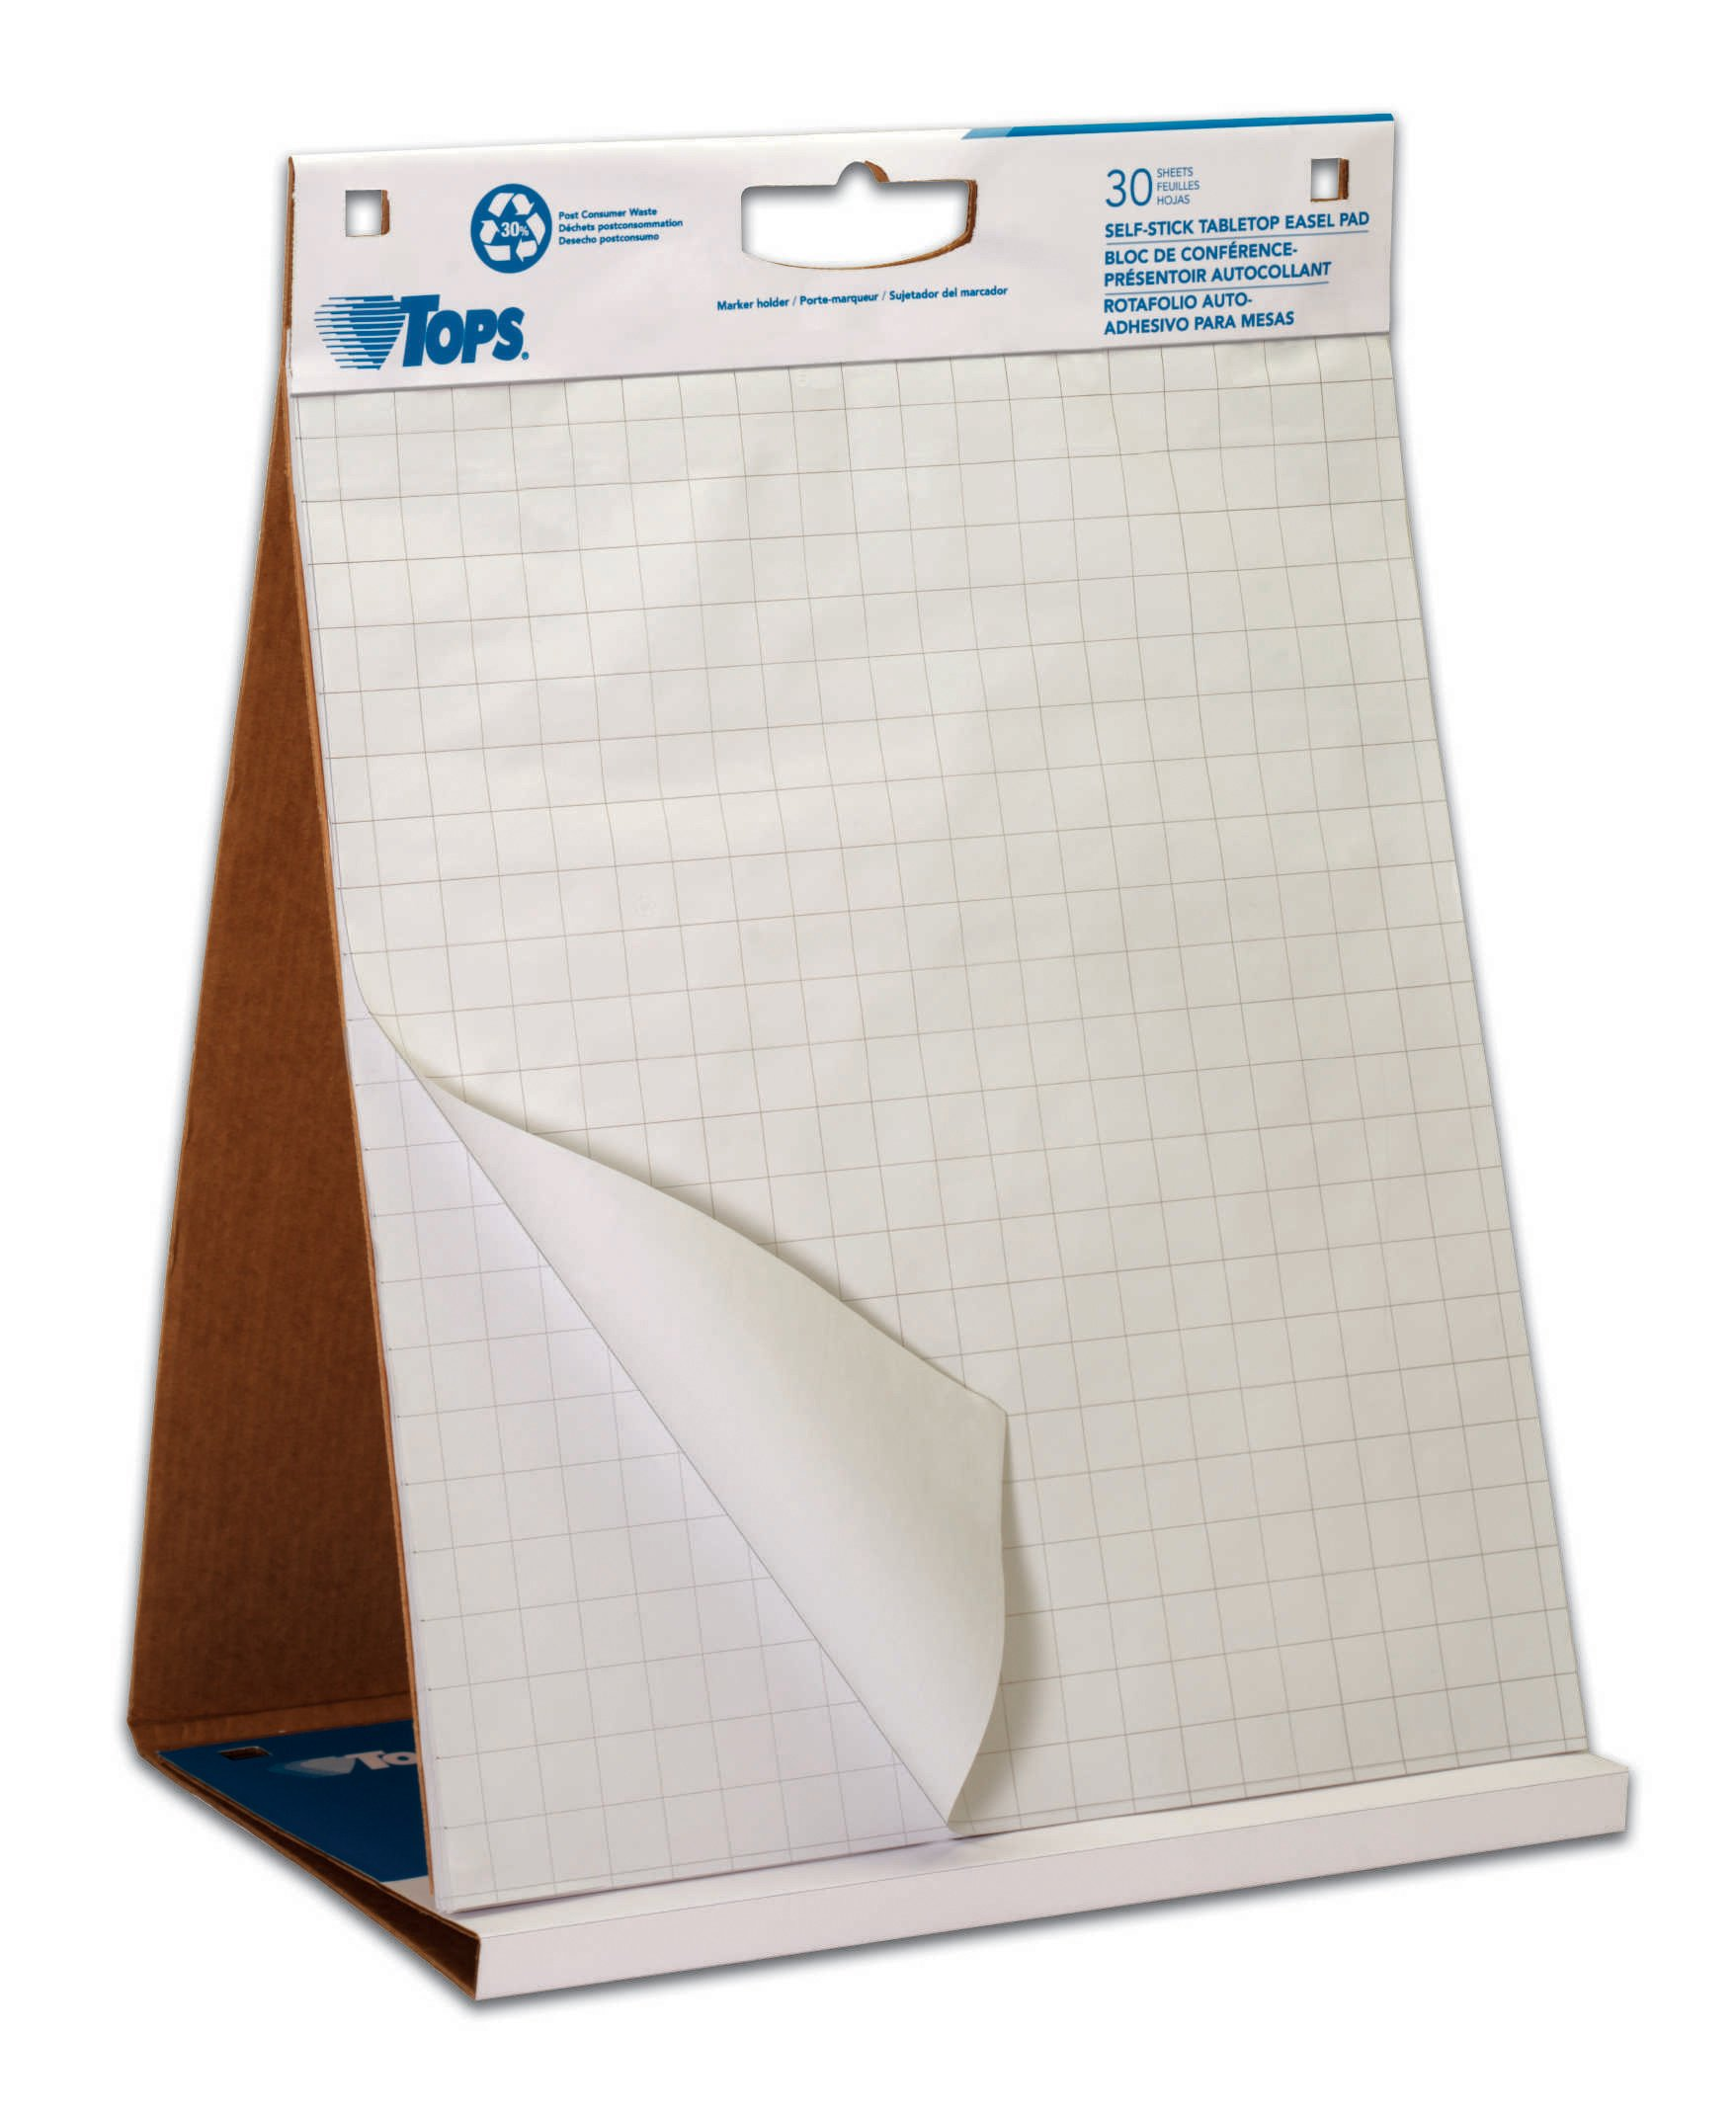 TOPS Easel Pad with Tabletop Easel, 30 Self Stick Sheets, White, 22 x 23 Inches (79250) by TOPS